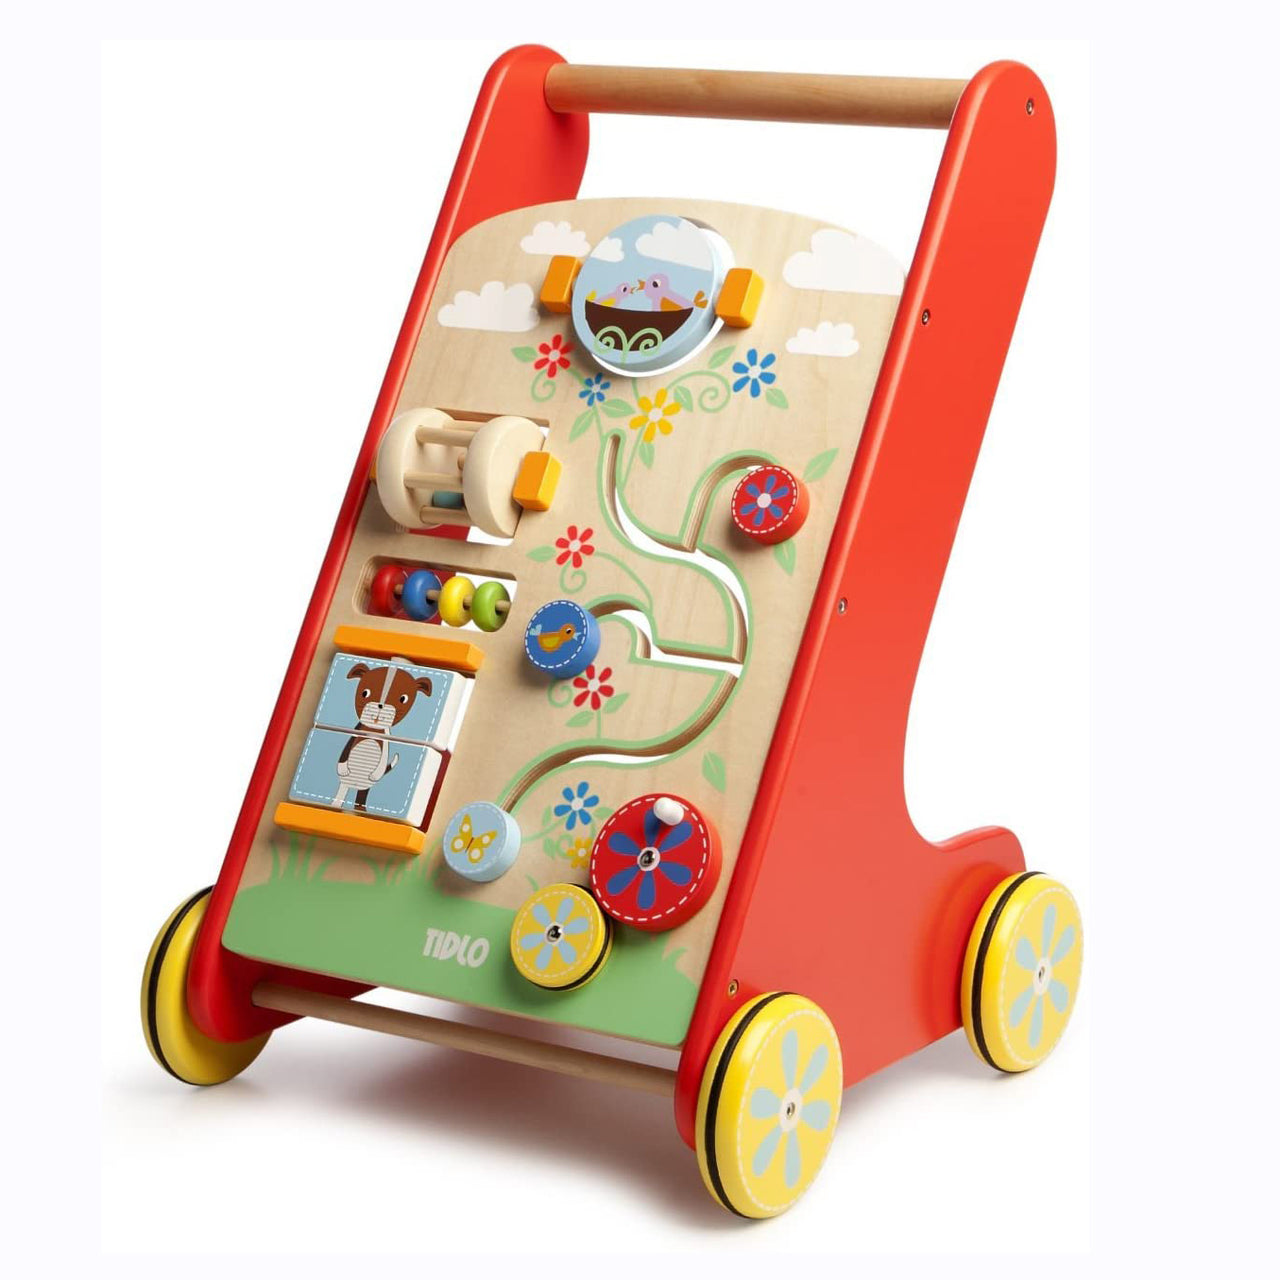 Make learning how to walk fun with the Tidlo Activity Walker! Full of exciting and entertaining activities that are sure to provide hours of playtime fun! This brightly coloured walker includes a spinning cage rattle, mini abacus, a spinning mirror, matching blocks and more to entertain and stimulate young minds. There is even a handy storage tray at the back so your favourite teddy can come along for the ride too!